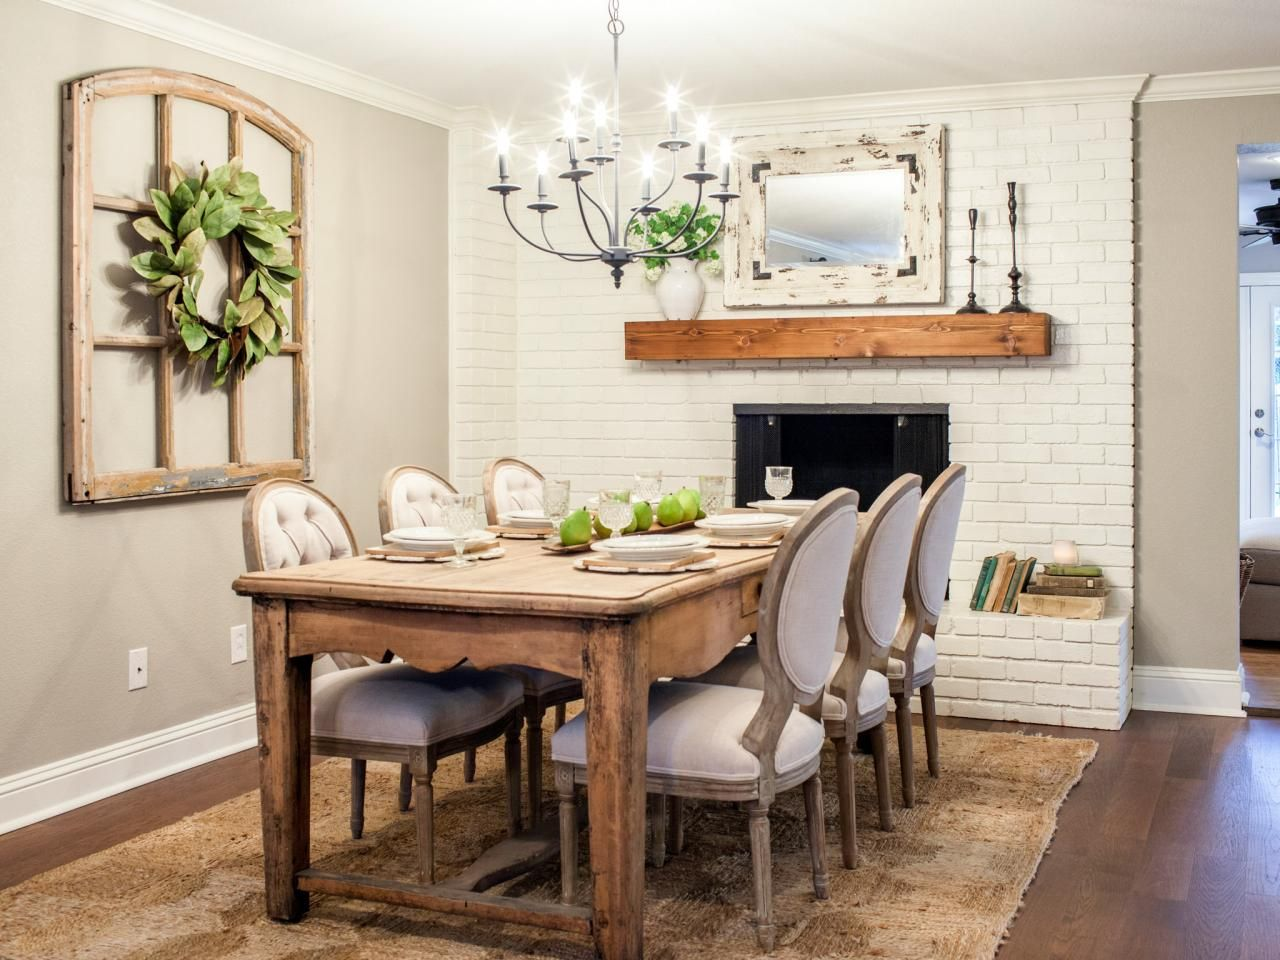 28 Signs Youu0027re A Fixer Upper Fanatic | HGTVu0027s Fixer Upper With Chip And  Joanna Gaines | HGTV